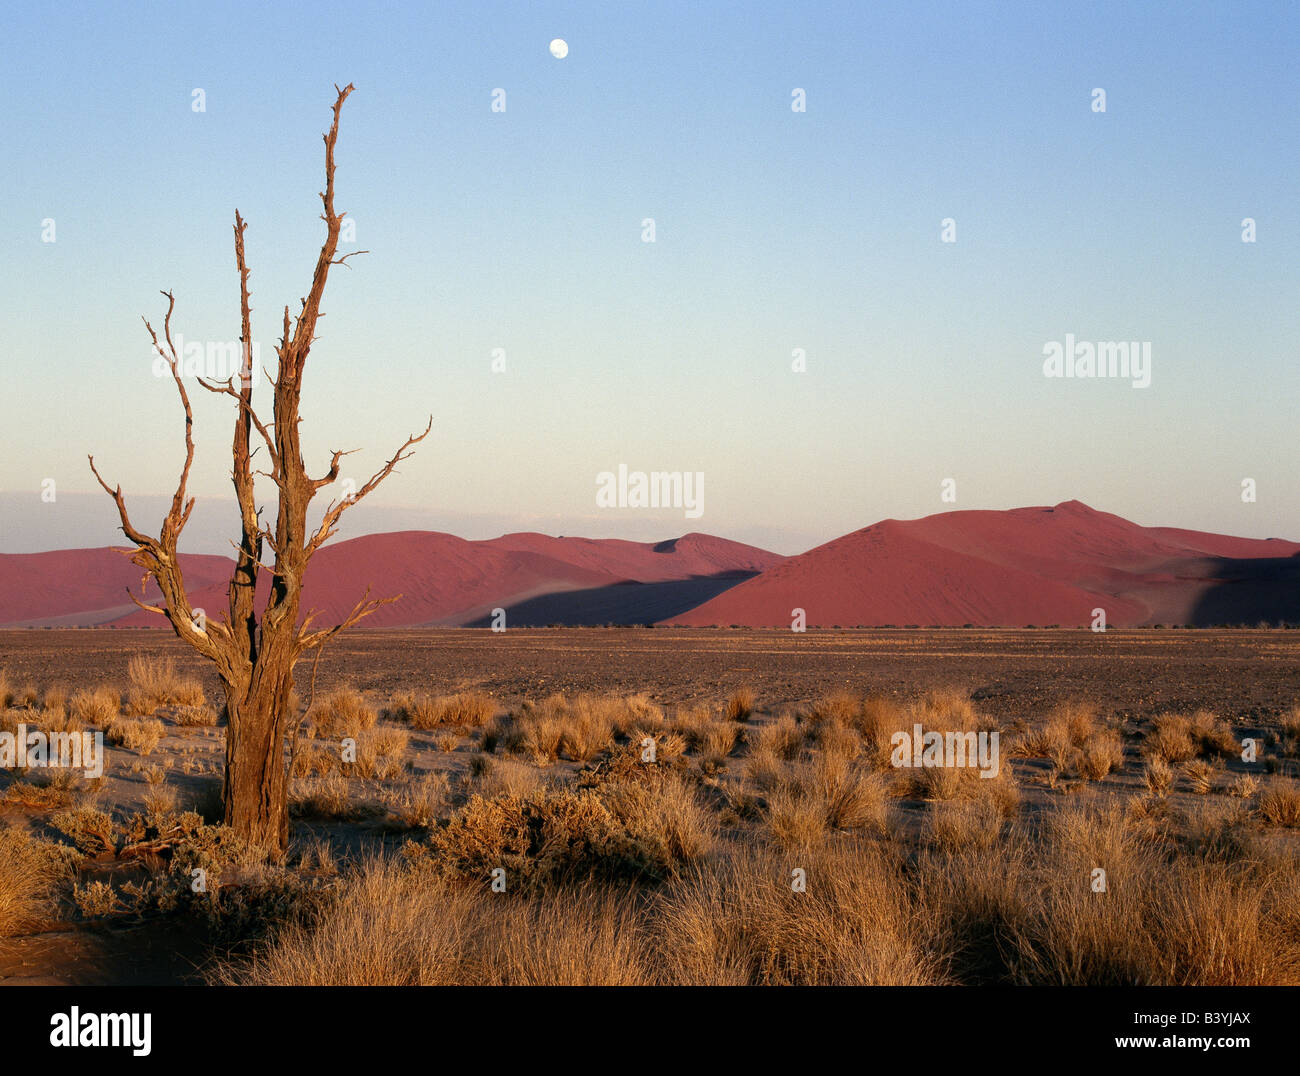 Namibia, Namib Desert, Sesriem. Full moon over the dunes at Sesriem in the Namib-Naukluft Park. Patterned by, and Stock Photo